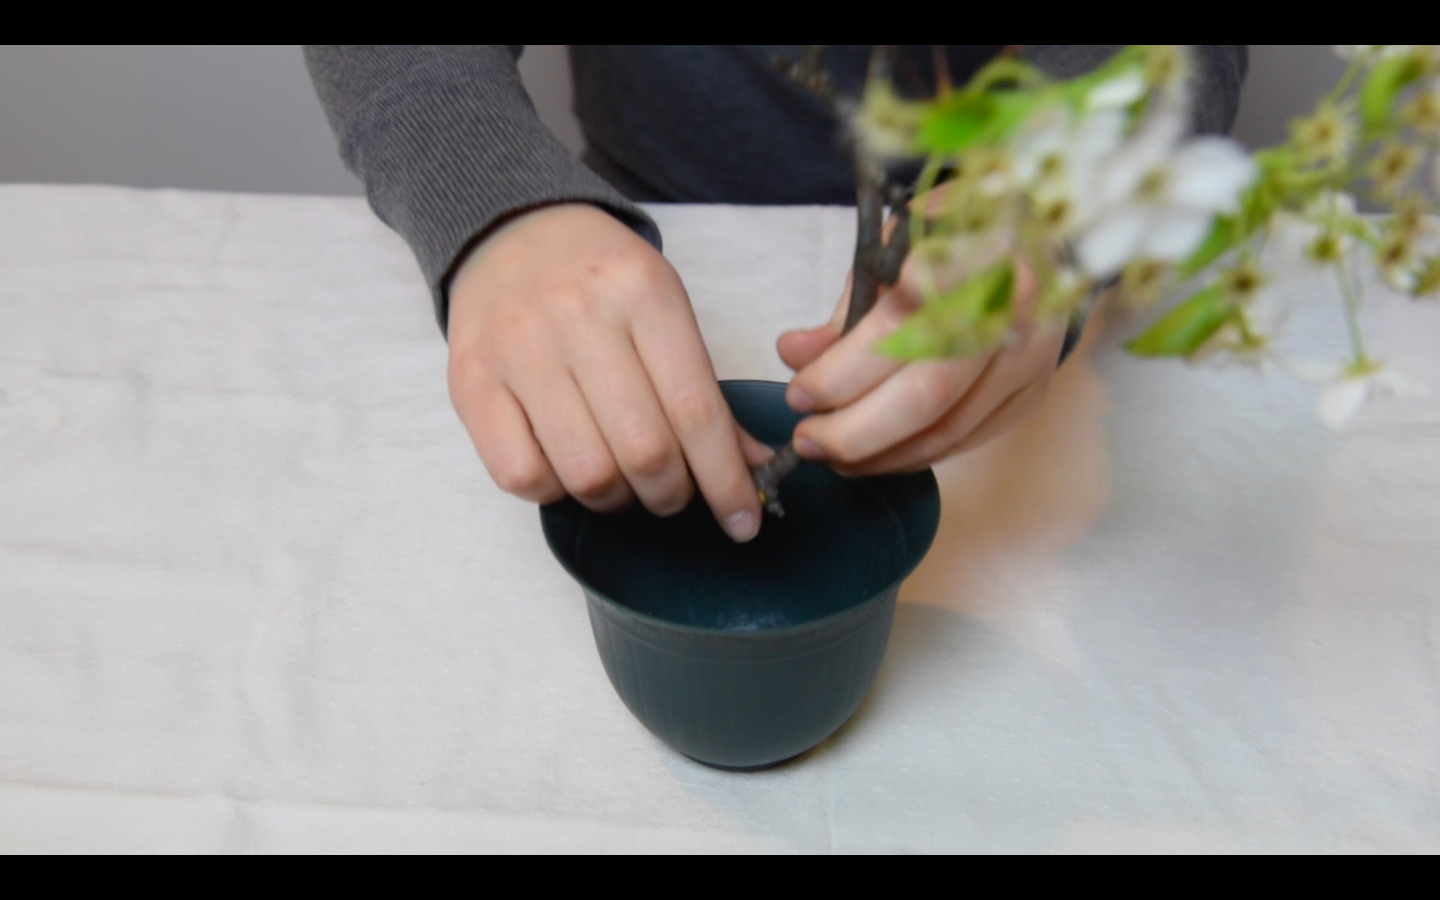 Picture of Planting a Real Branch in Money and Decorating With Cash Flowers